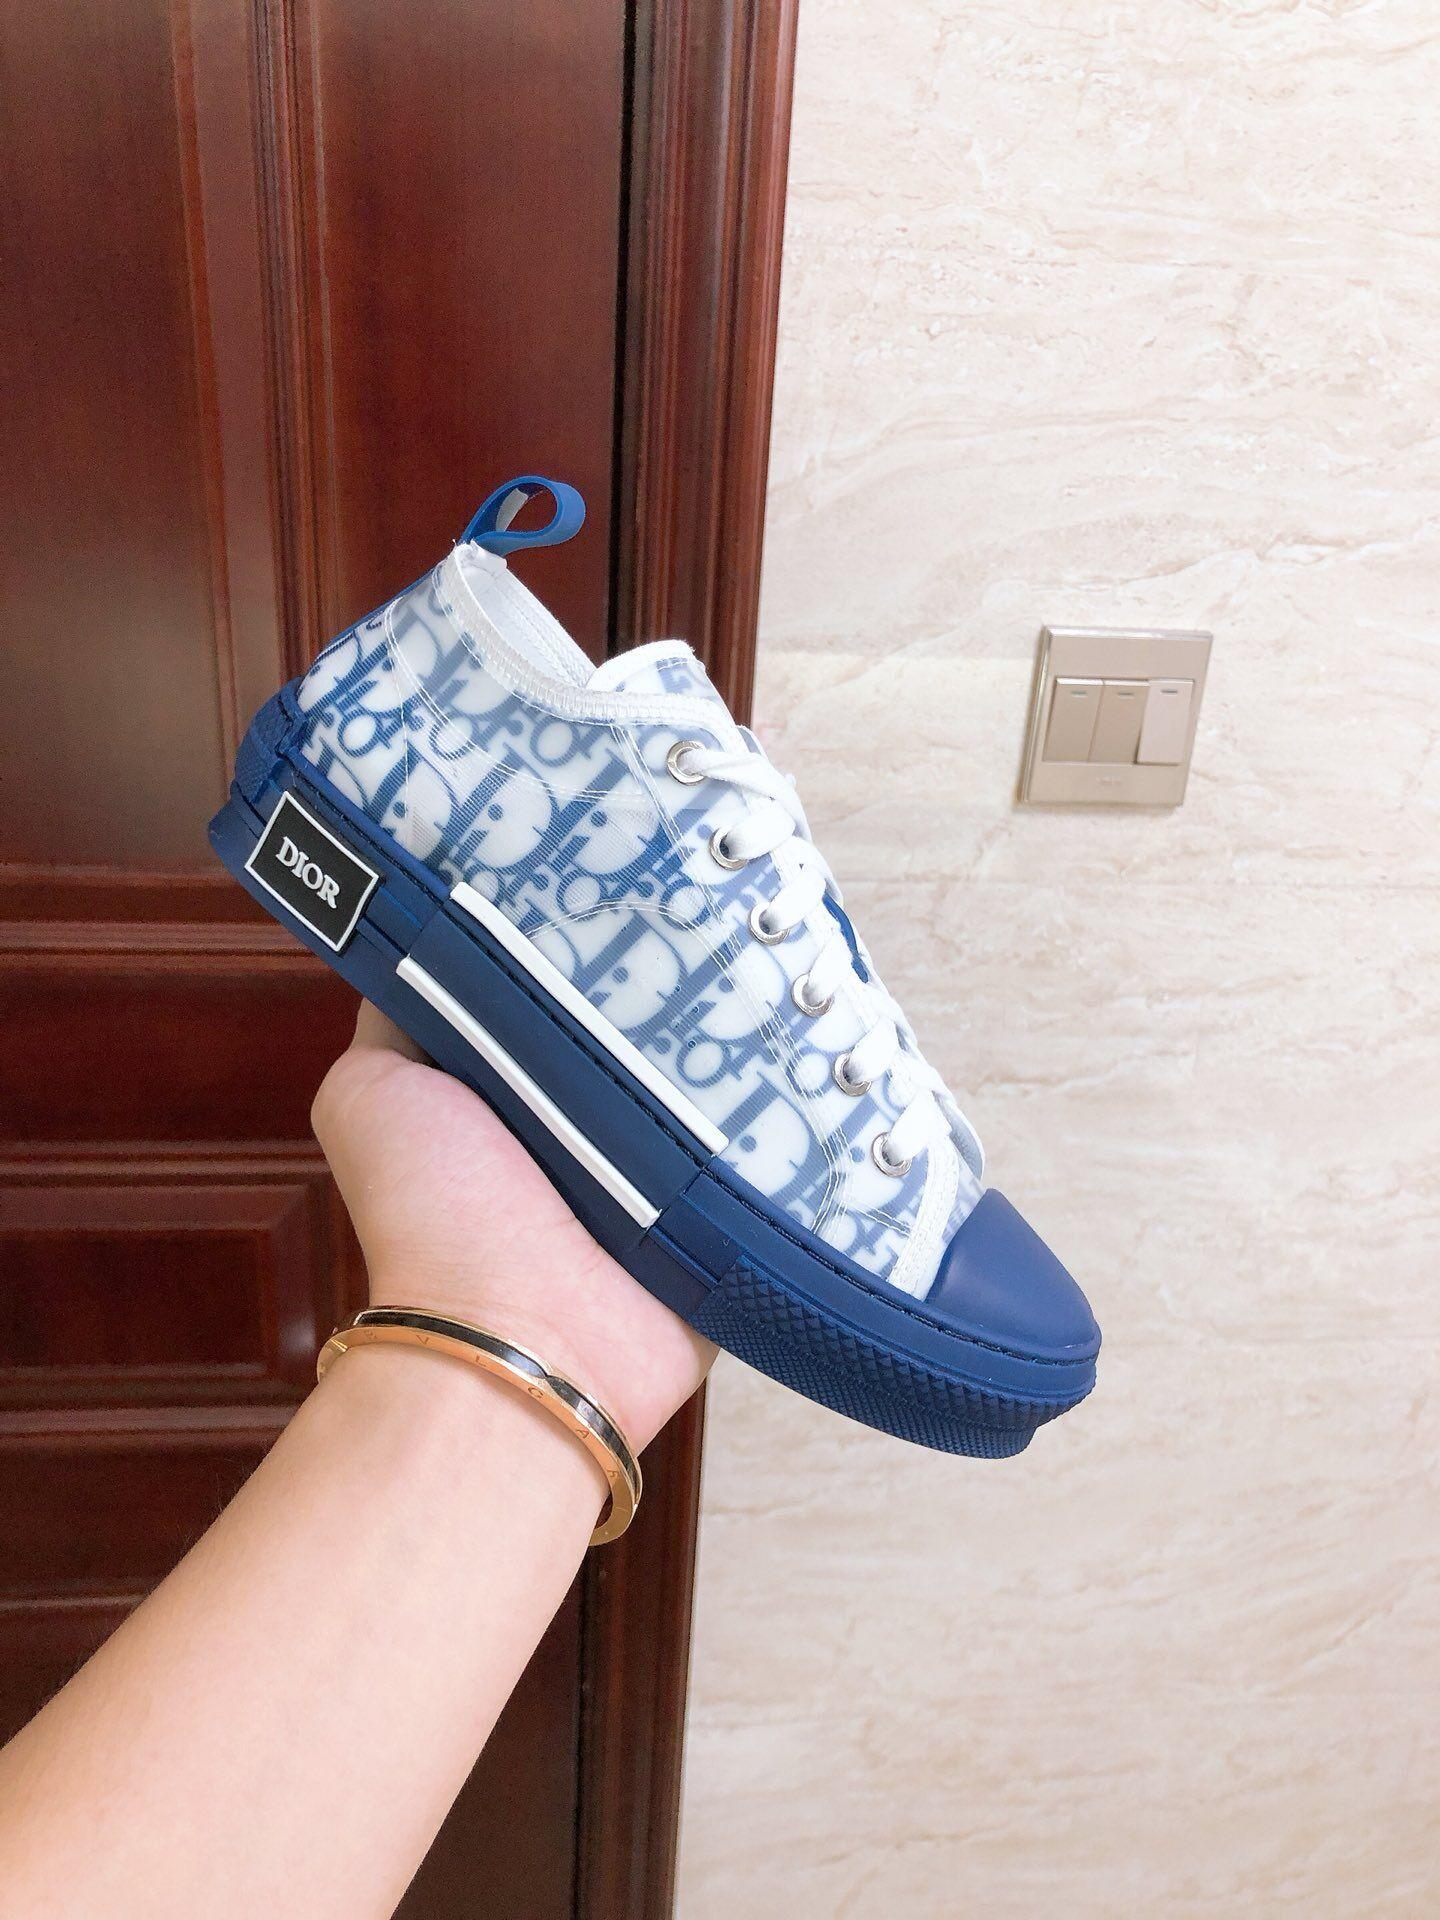 B23 LOW-TOP SNEAKER IN BLUE DIOR OBLIQUE DIOR SNEAKER DIOR SHOES  4